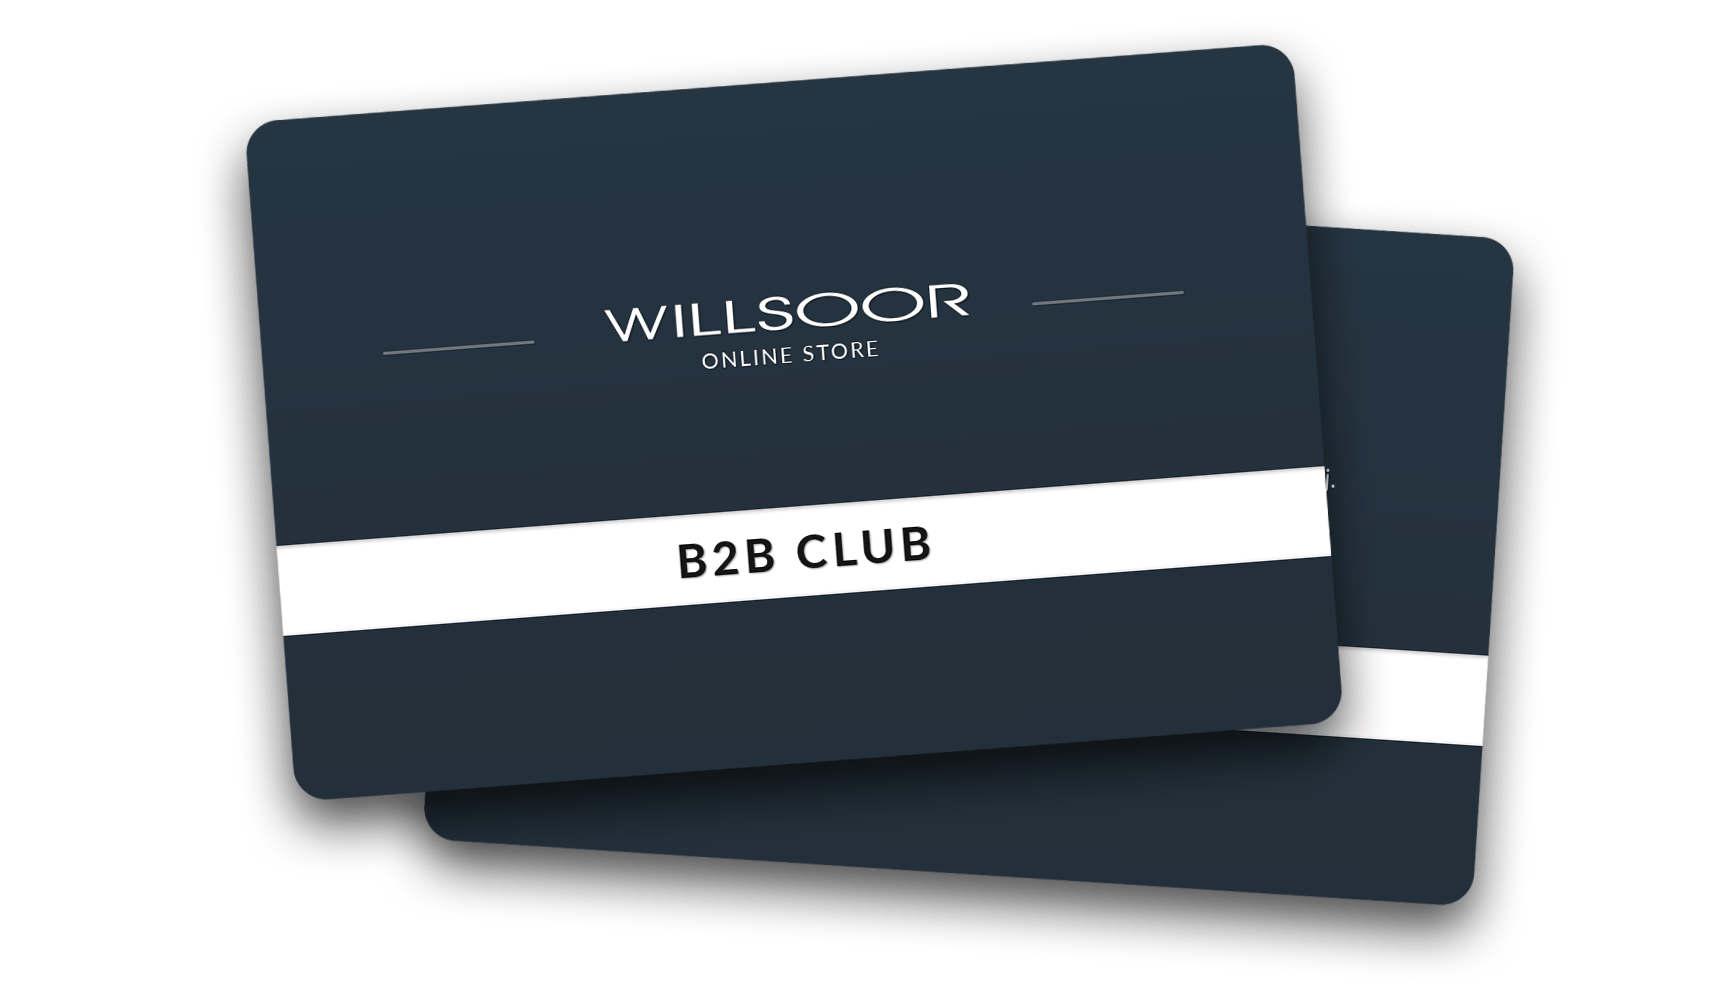 Willsoor B2B Club